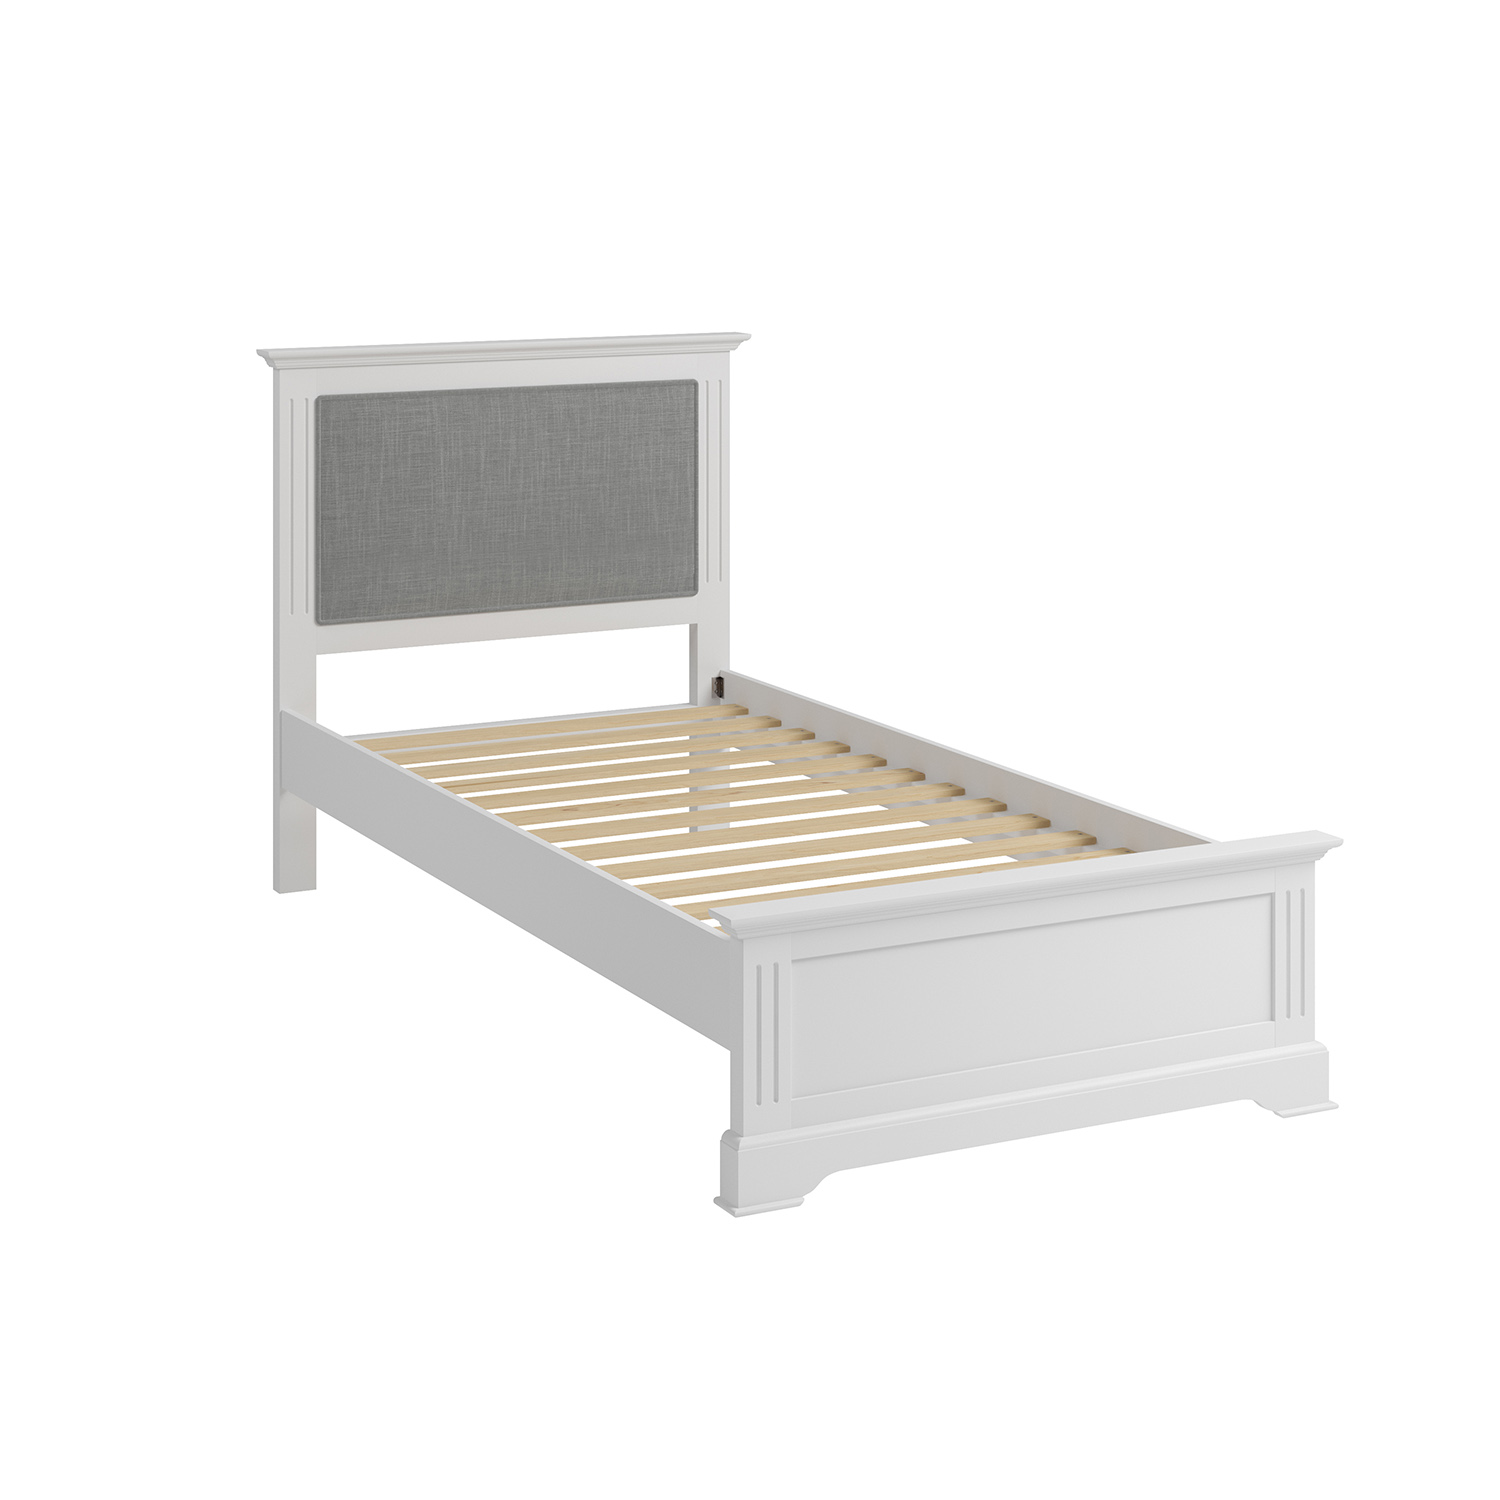 Whitby White Single 90cm Bedstead